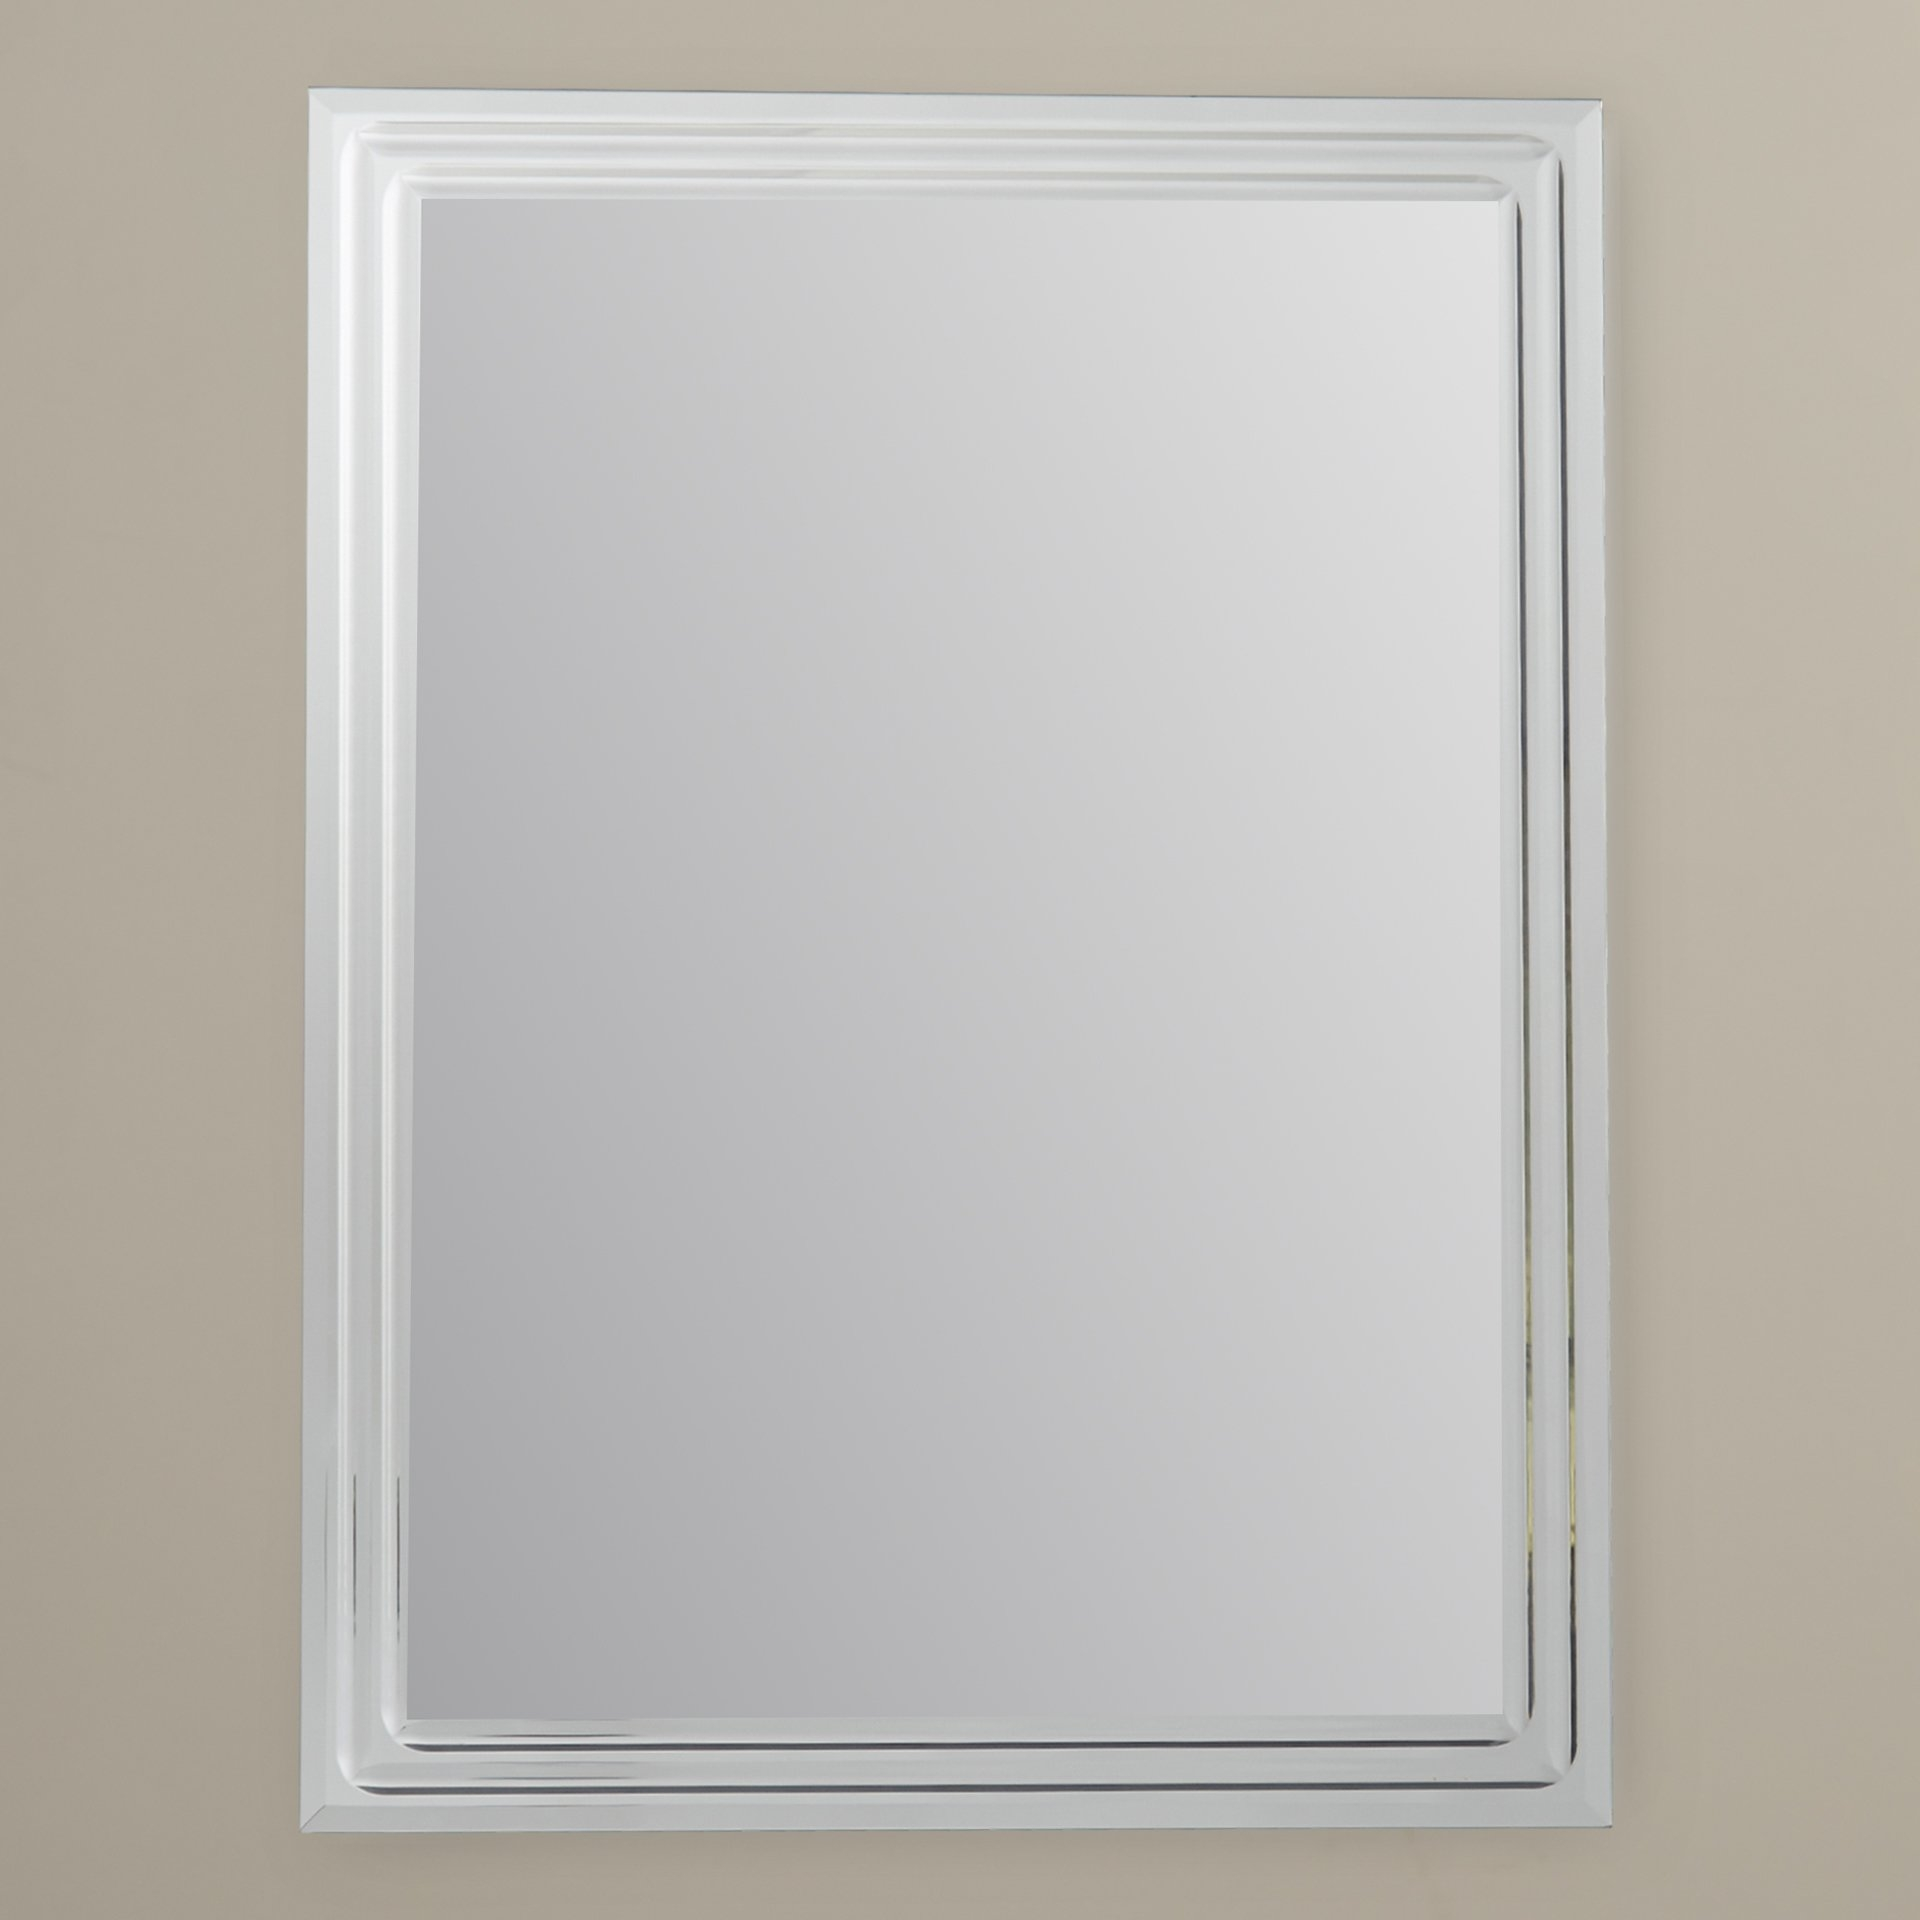 Brayden Studio Frameless Tri Bevel Wall Mirror Reviews Wayfair In Bevelled Wall Mirror (Image 4 of 15)